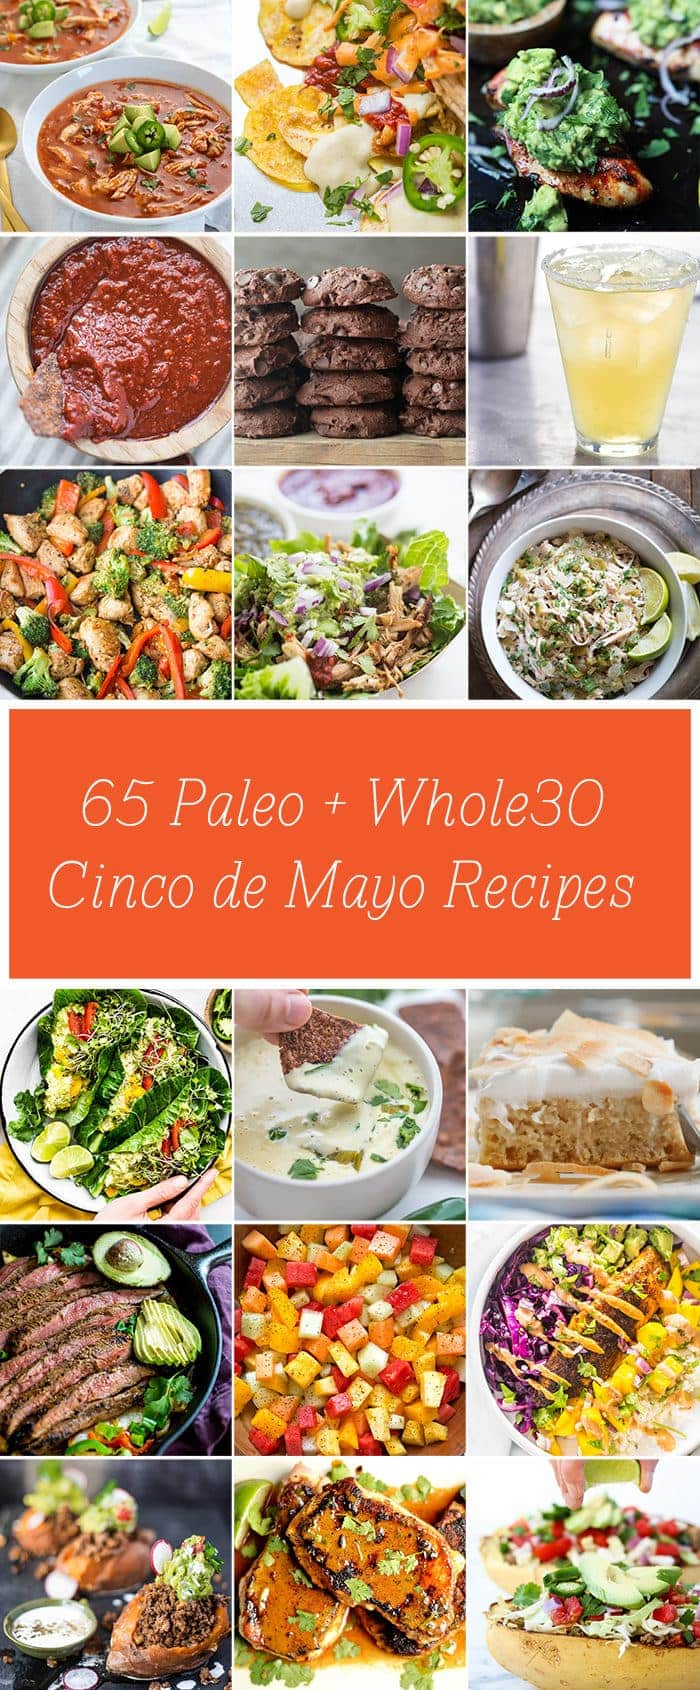 I've put together 65 paleo and Whole30 Cinco de Mayo recipes for a healthy, festive celebration! Dairy-free, gluten-free, and sugar-free, each recipe is packed full of flavor but light on the guilt. This is the ultimate roundup of paleo Cinco de Mayo recipes and Whole30 Cinco de Mayo recipes!